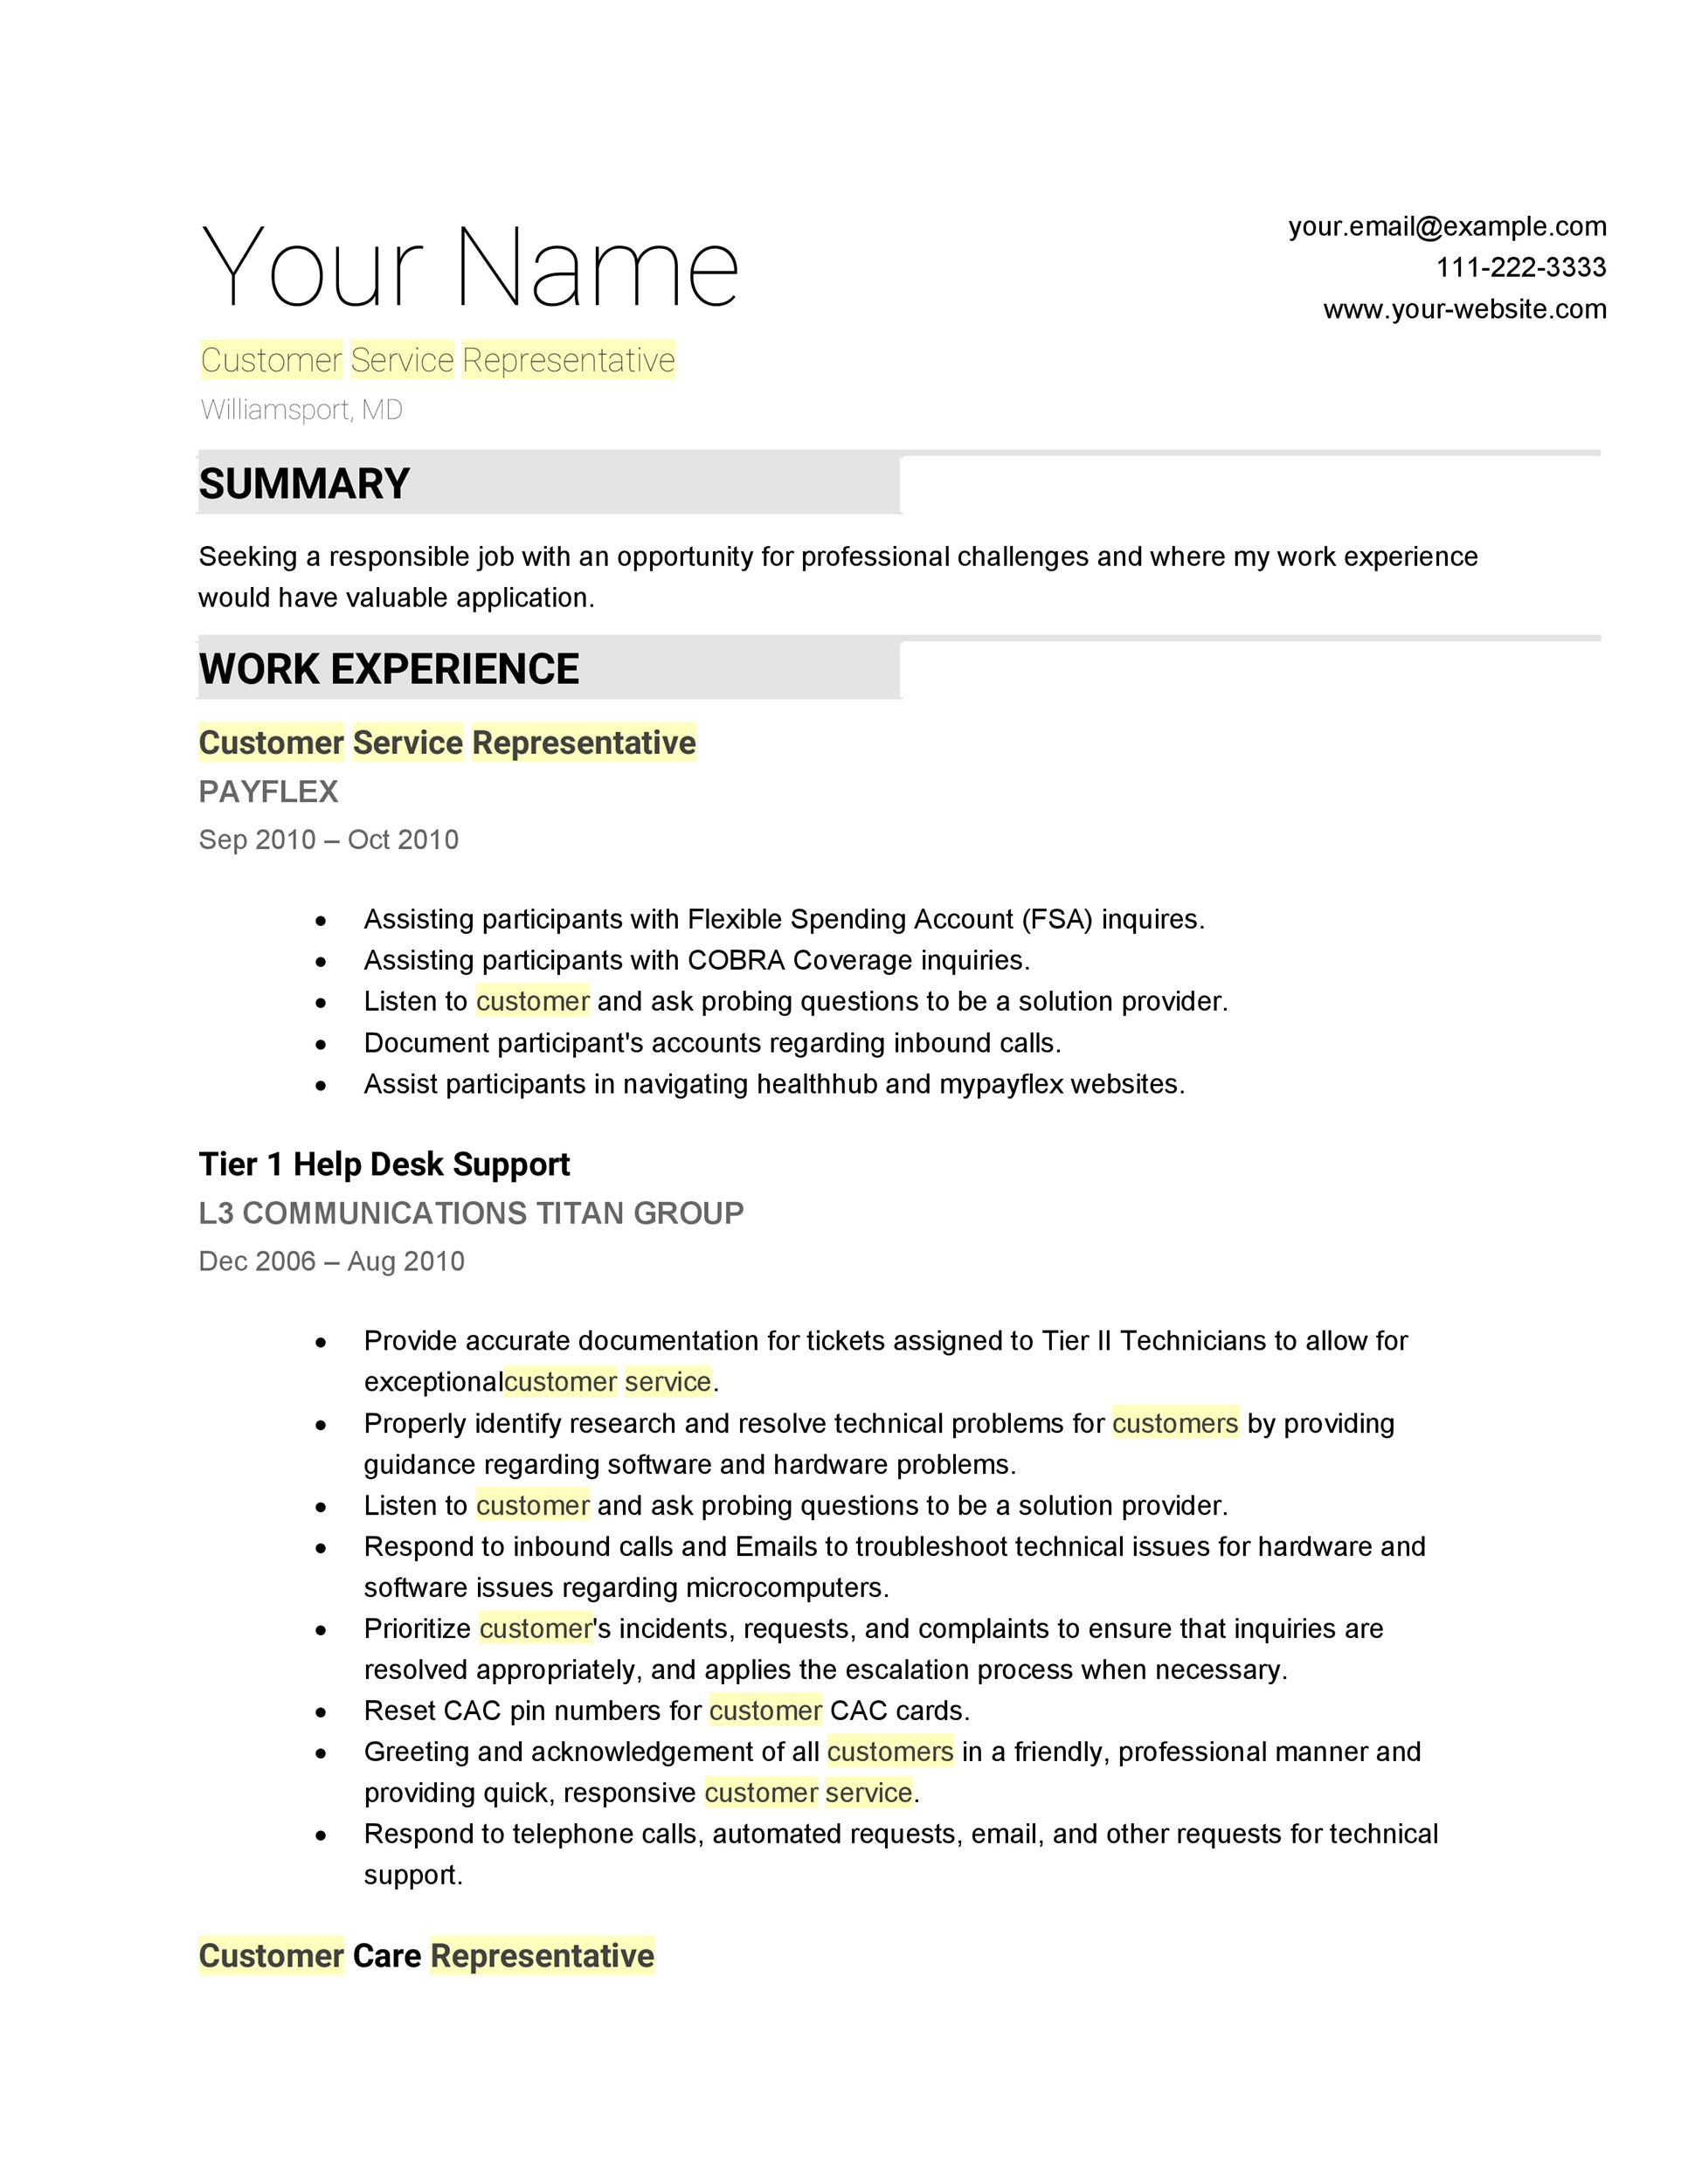 30+ Customer Service Resume Examples - Template Lab - sample resume customer service